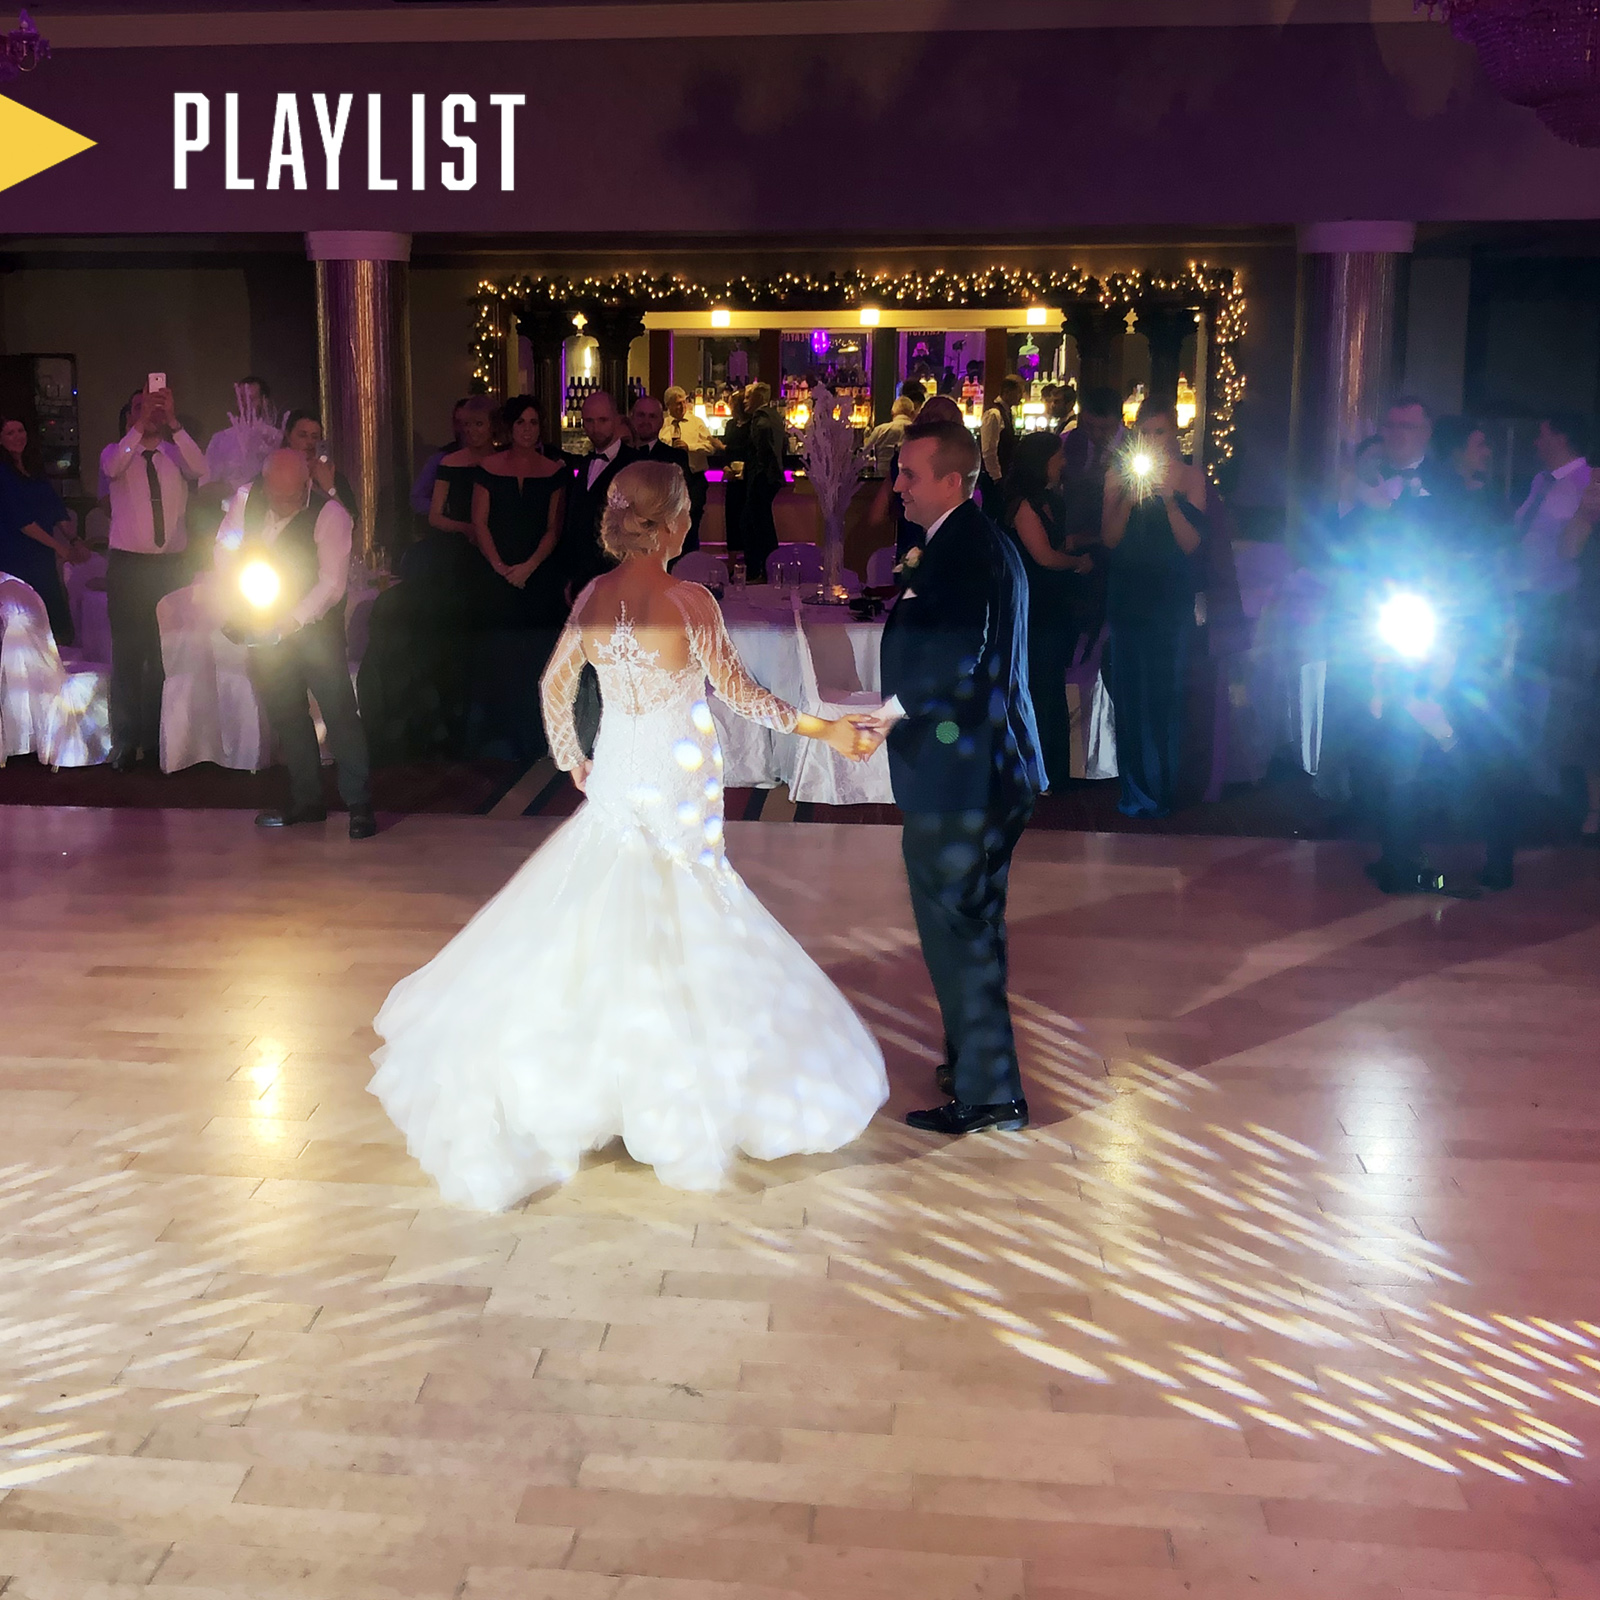 PLAYLIST with Lorna & Jason at their wedding in the Salthill Hotel on the 28th December 2019